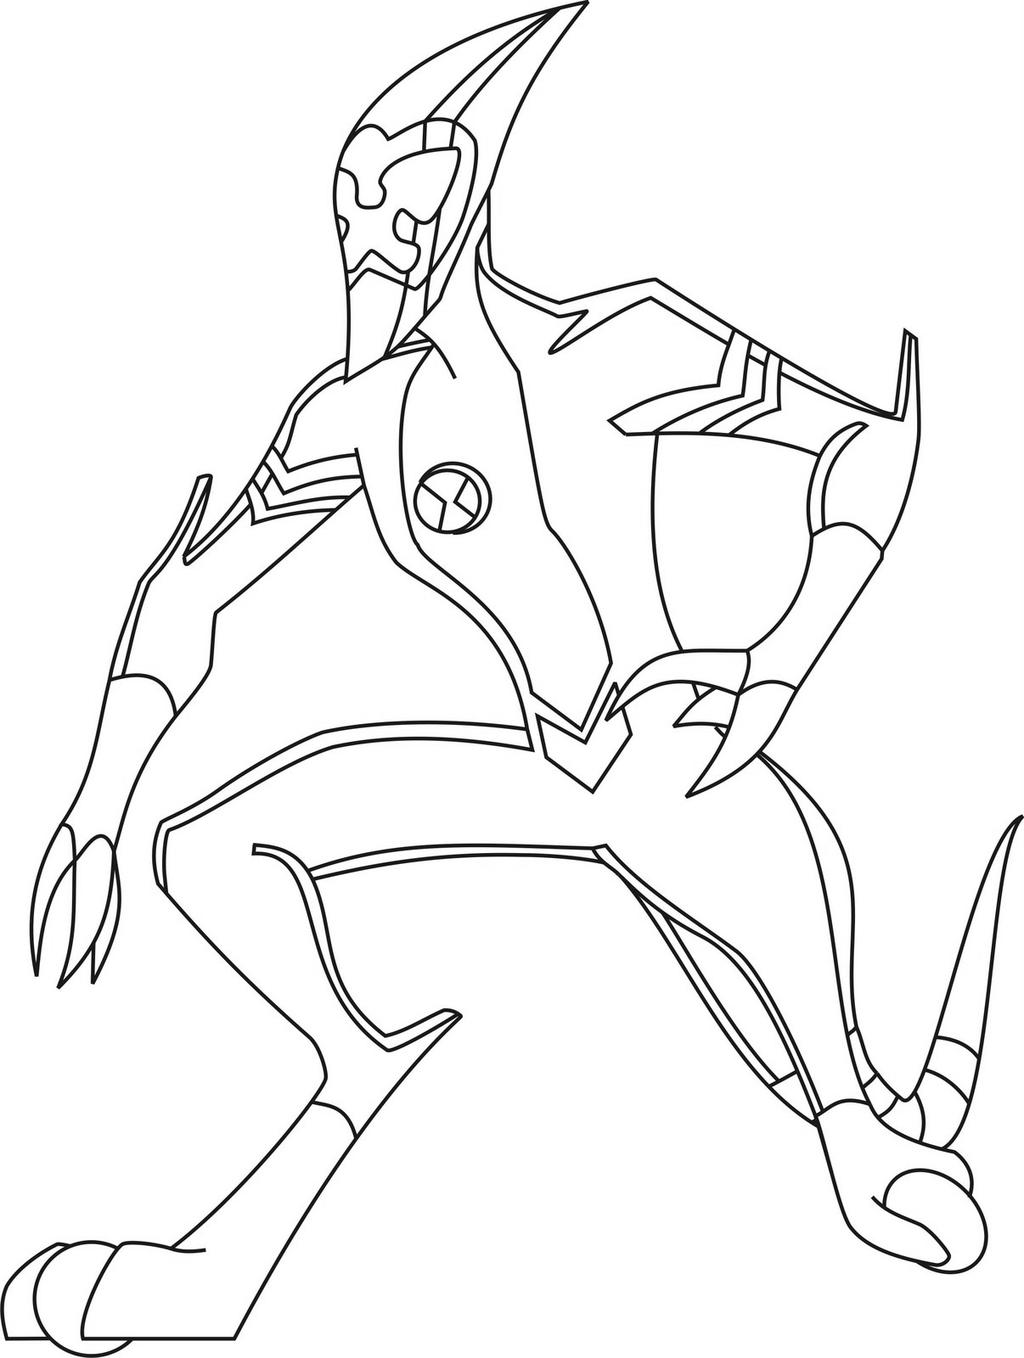 Free Ultimate Four Arms Alien Coloring Pages printable